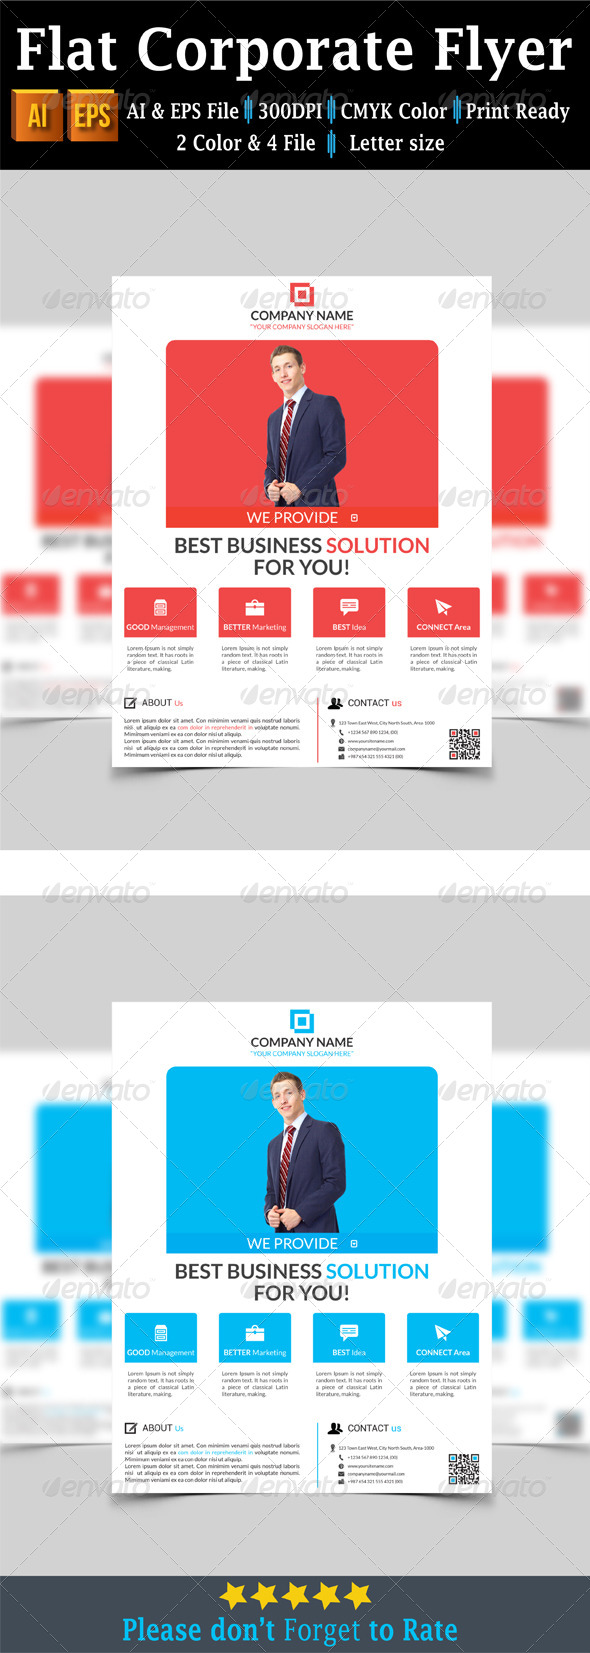 GraphicRiver Flat Corporate Flyer 7658573